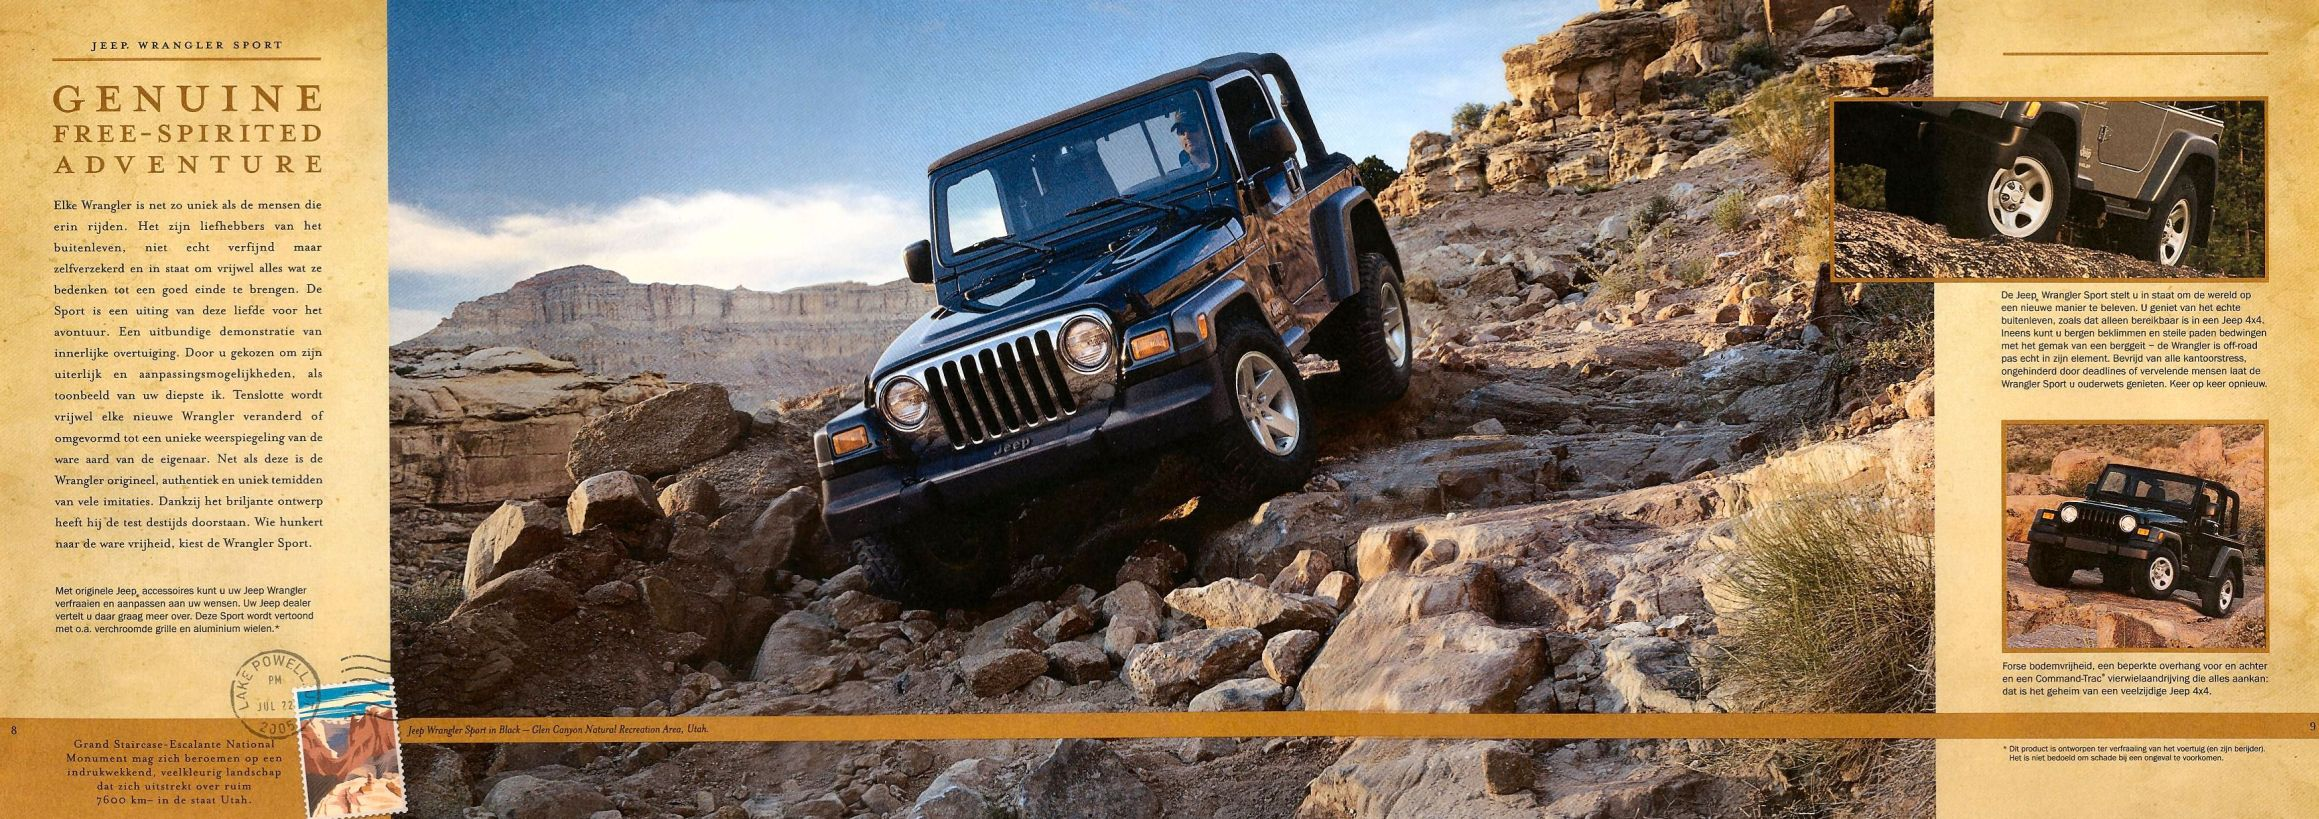 Index16 besides Bumperoffroad in addition Kevin Durant Jeep Wrangler Lincoln Continental in addition 1612 Truck Trends Best Of The 2016 Sema Show together with 49448 2017 SEMA JCR Offroad Orange Jeep  anche. on old jeep wrangler